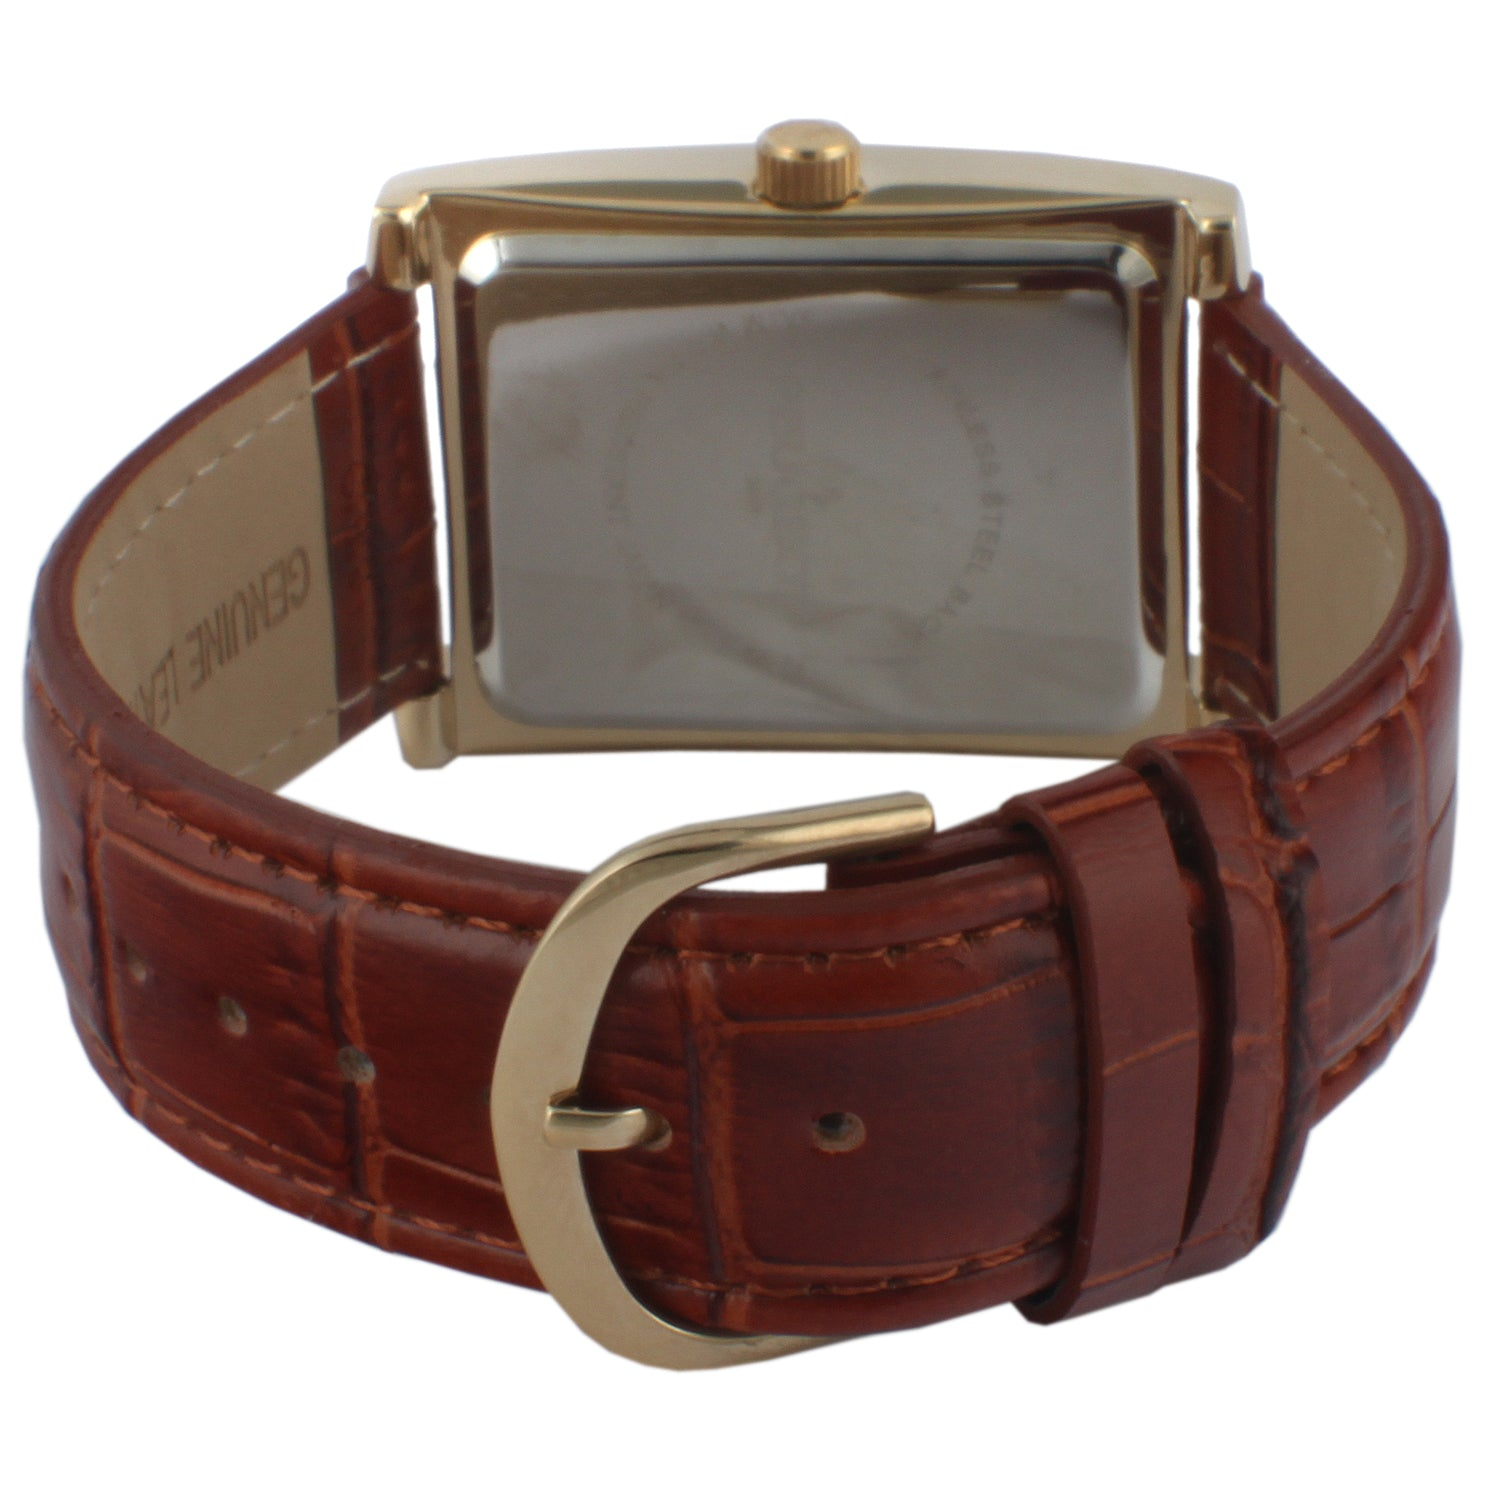 Gold tone Roman Numeral Watch - Brown